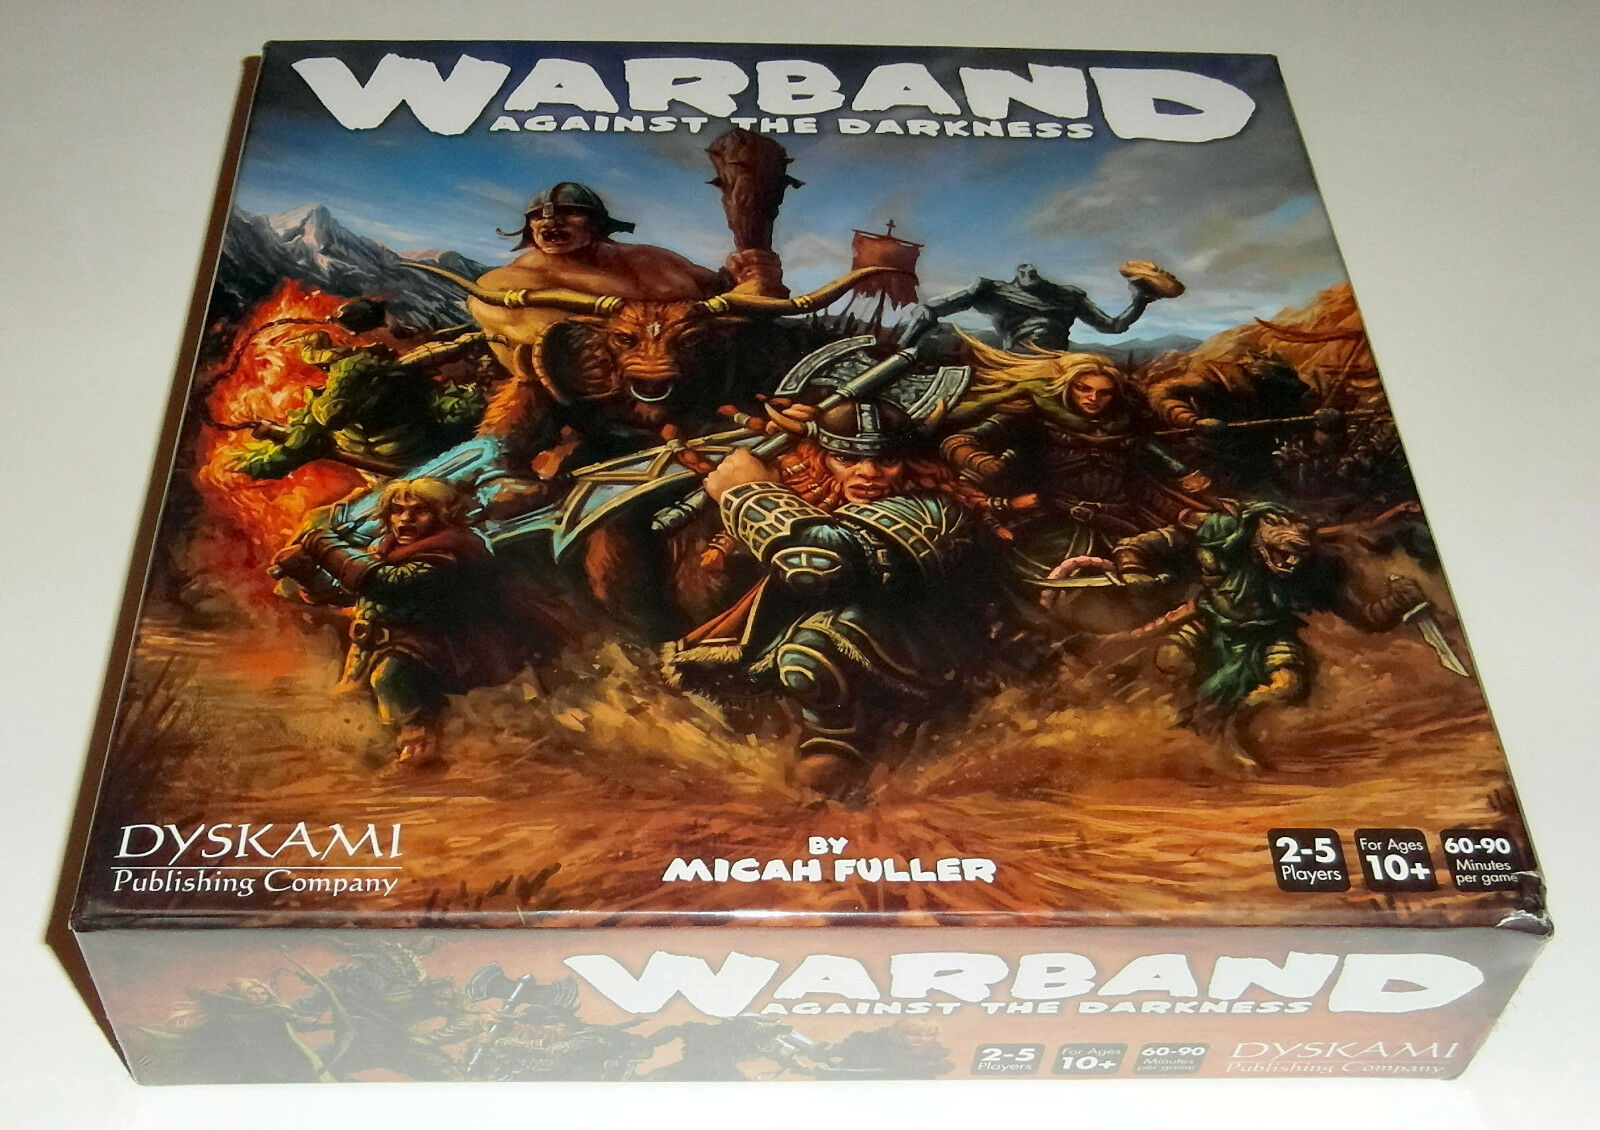 Warband  Against the Darkness - Dyskami Publishing Company - 2015